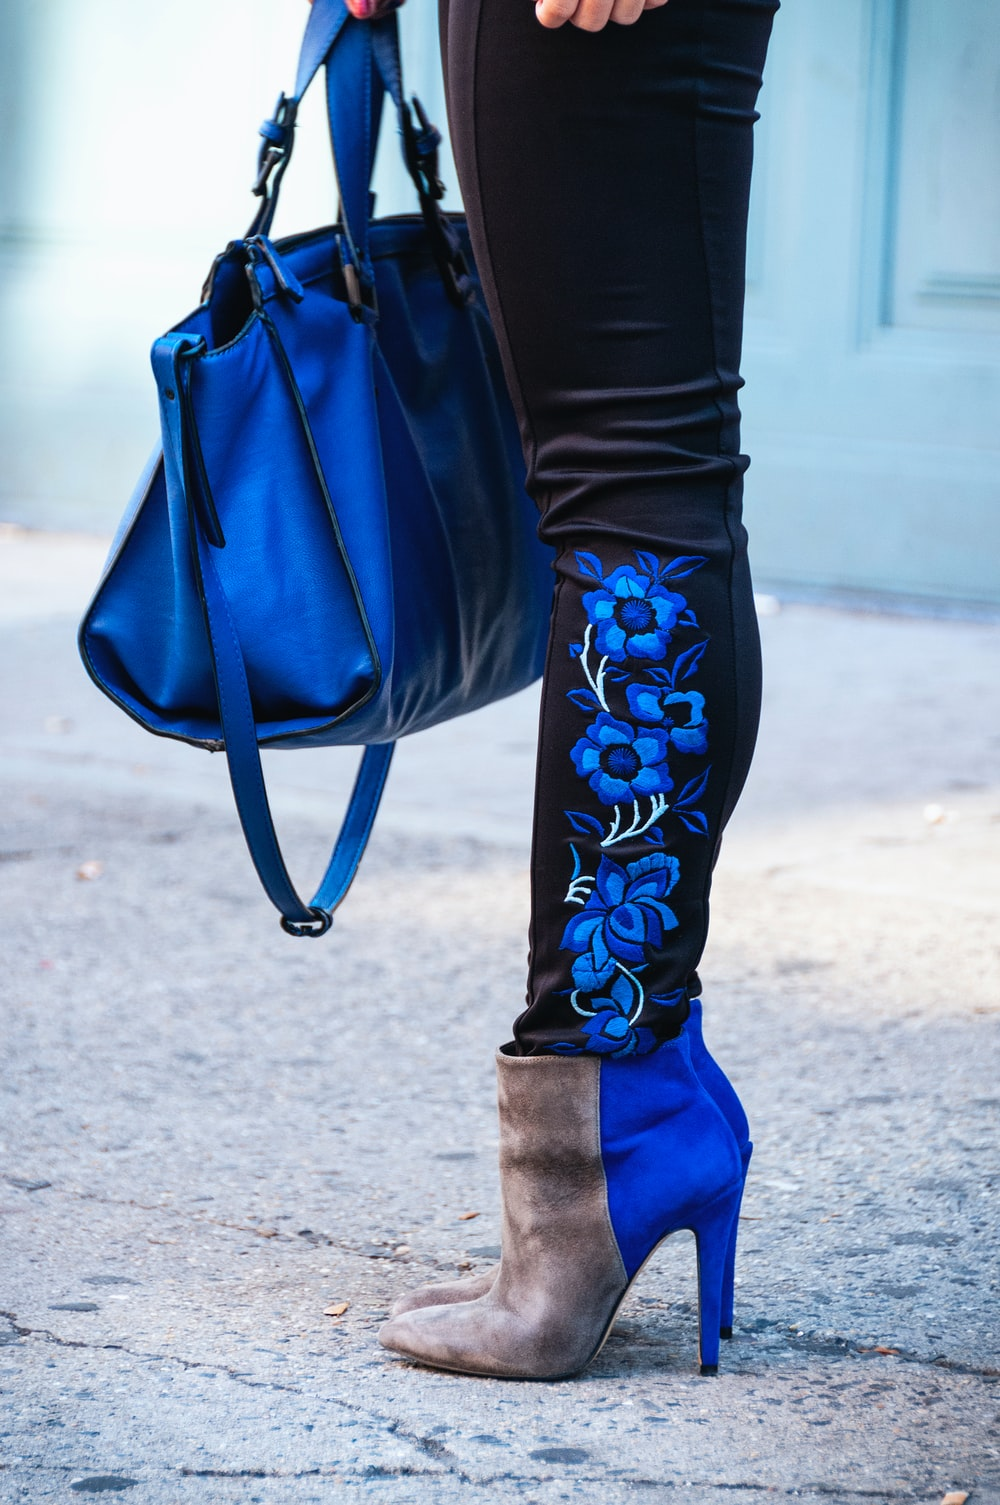 person in black leggings, booties and carrying blue bag